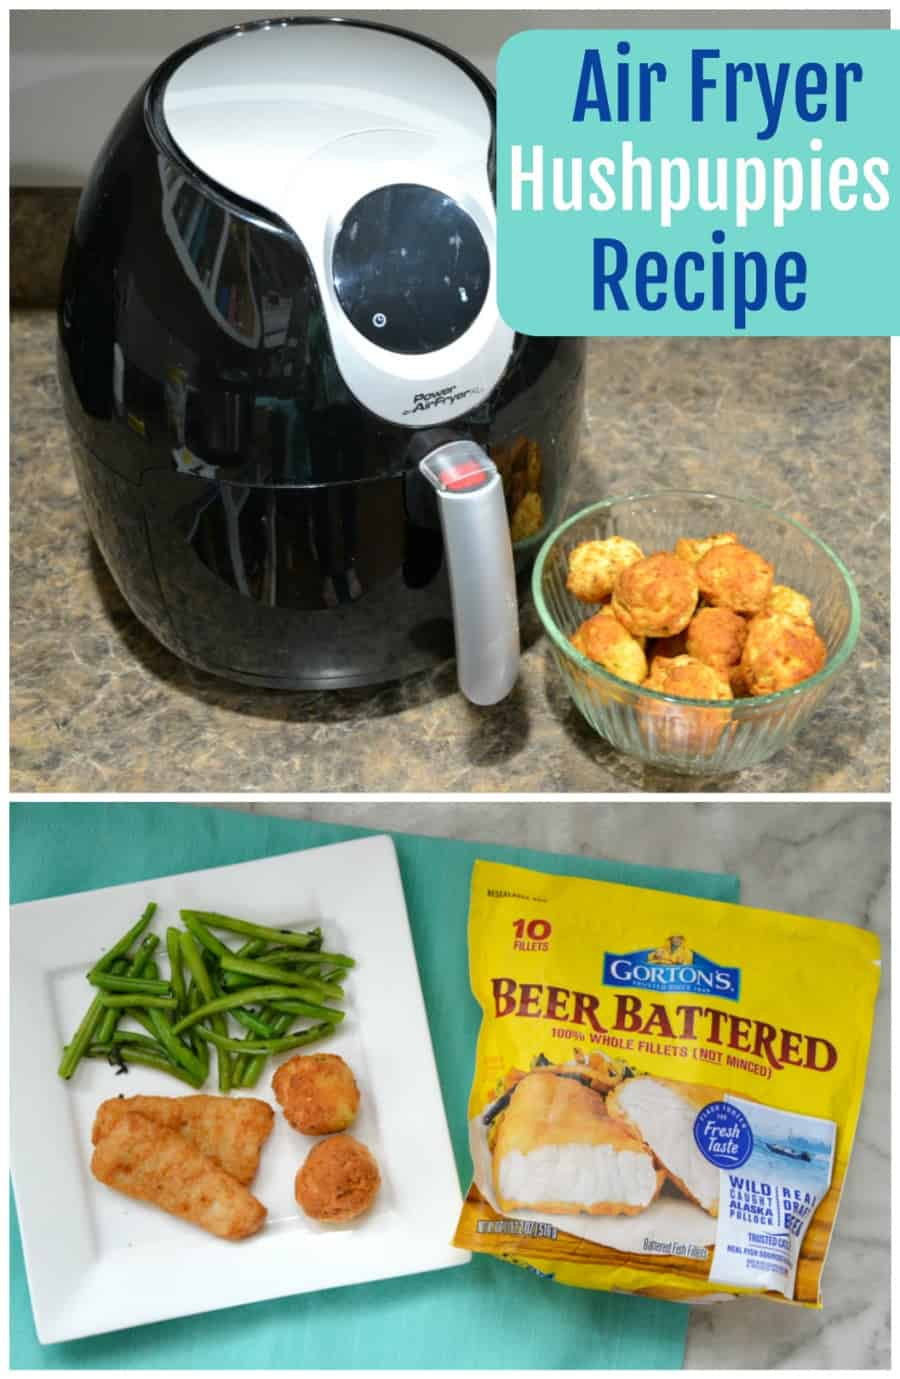 Air Fryer hushpuppies recipe